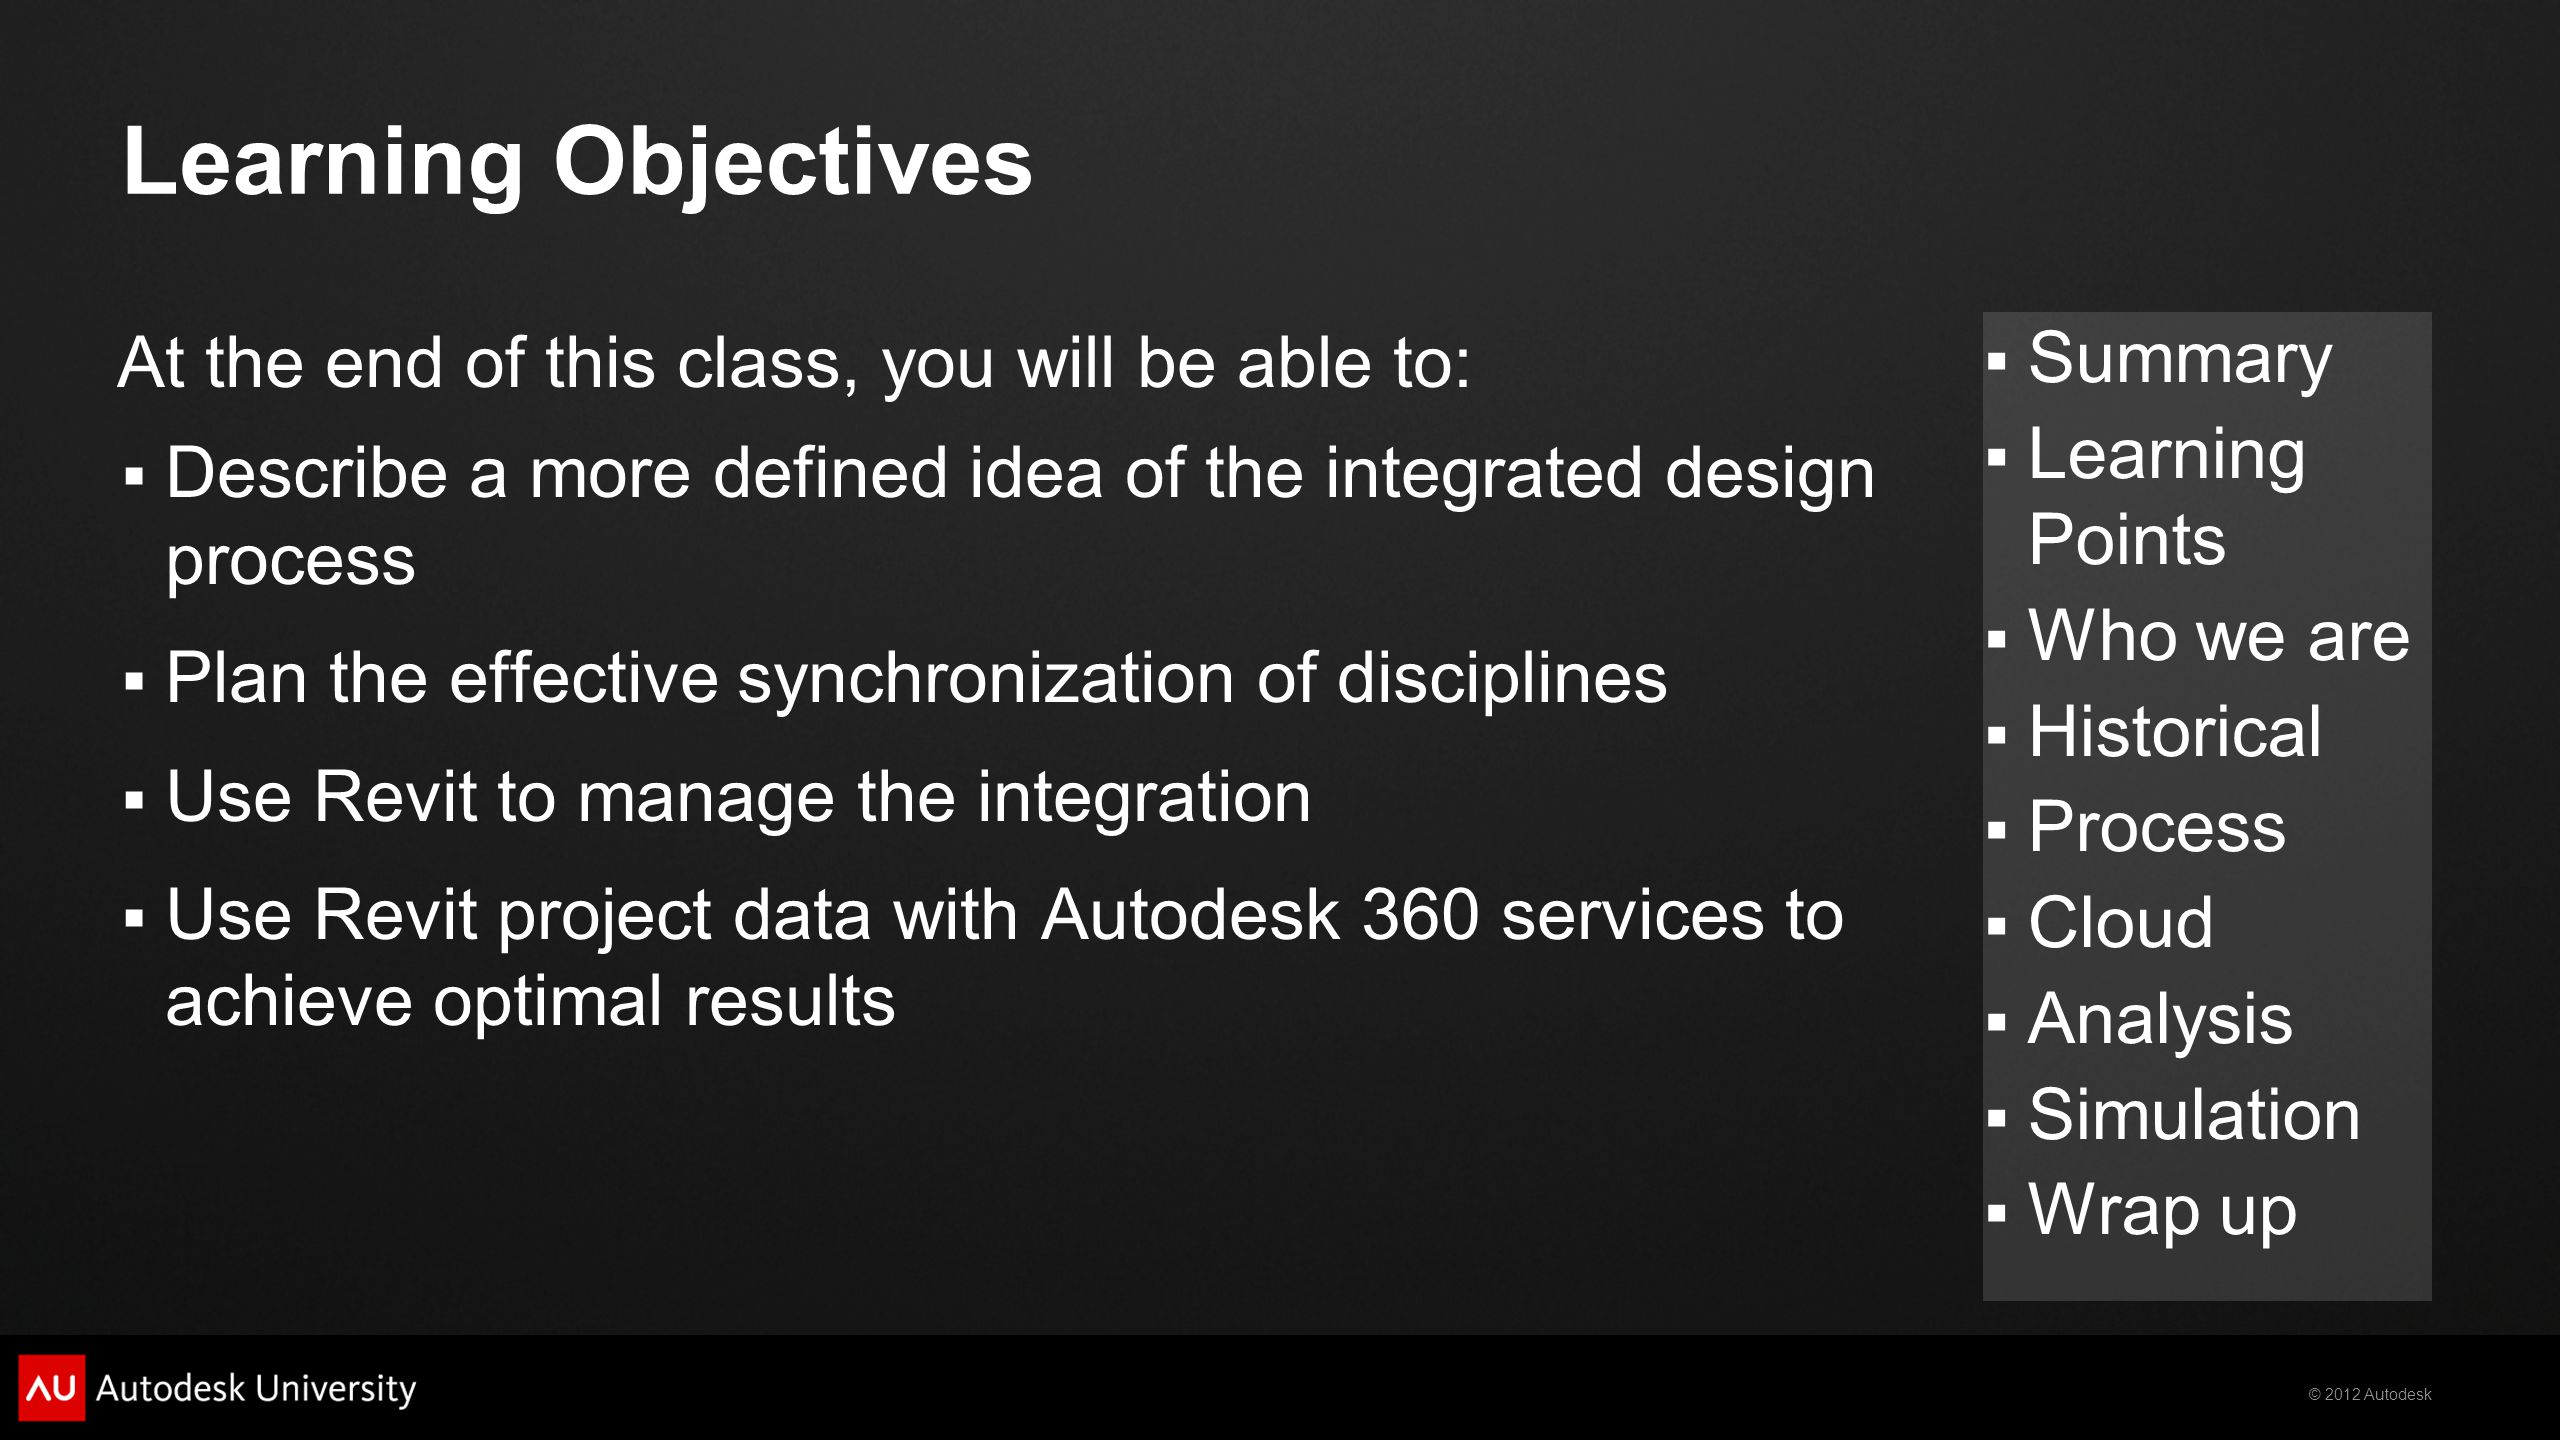 © 2012 Autodesk  Summary  Learning Points  Who we are  Historical  Process  Cloud  Analysis  Simulation  Wrap up Learning Objectives At the e